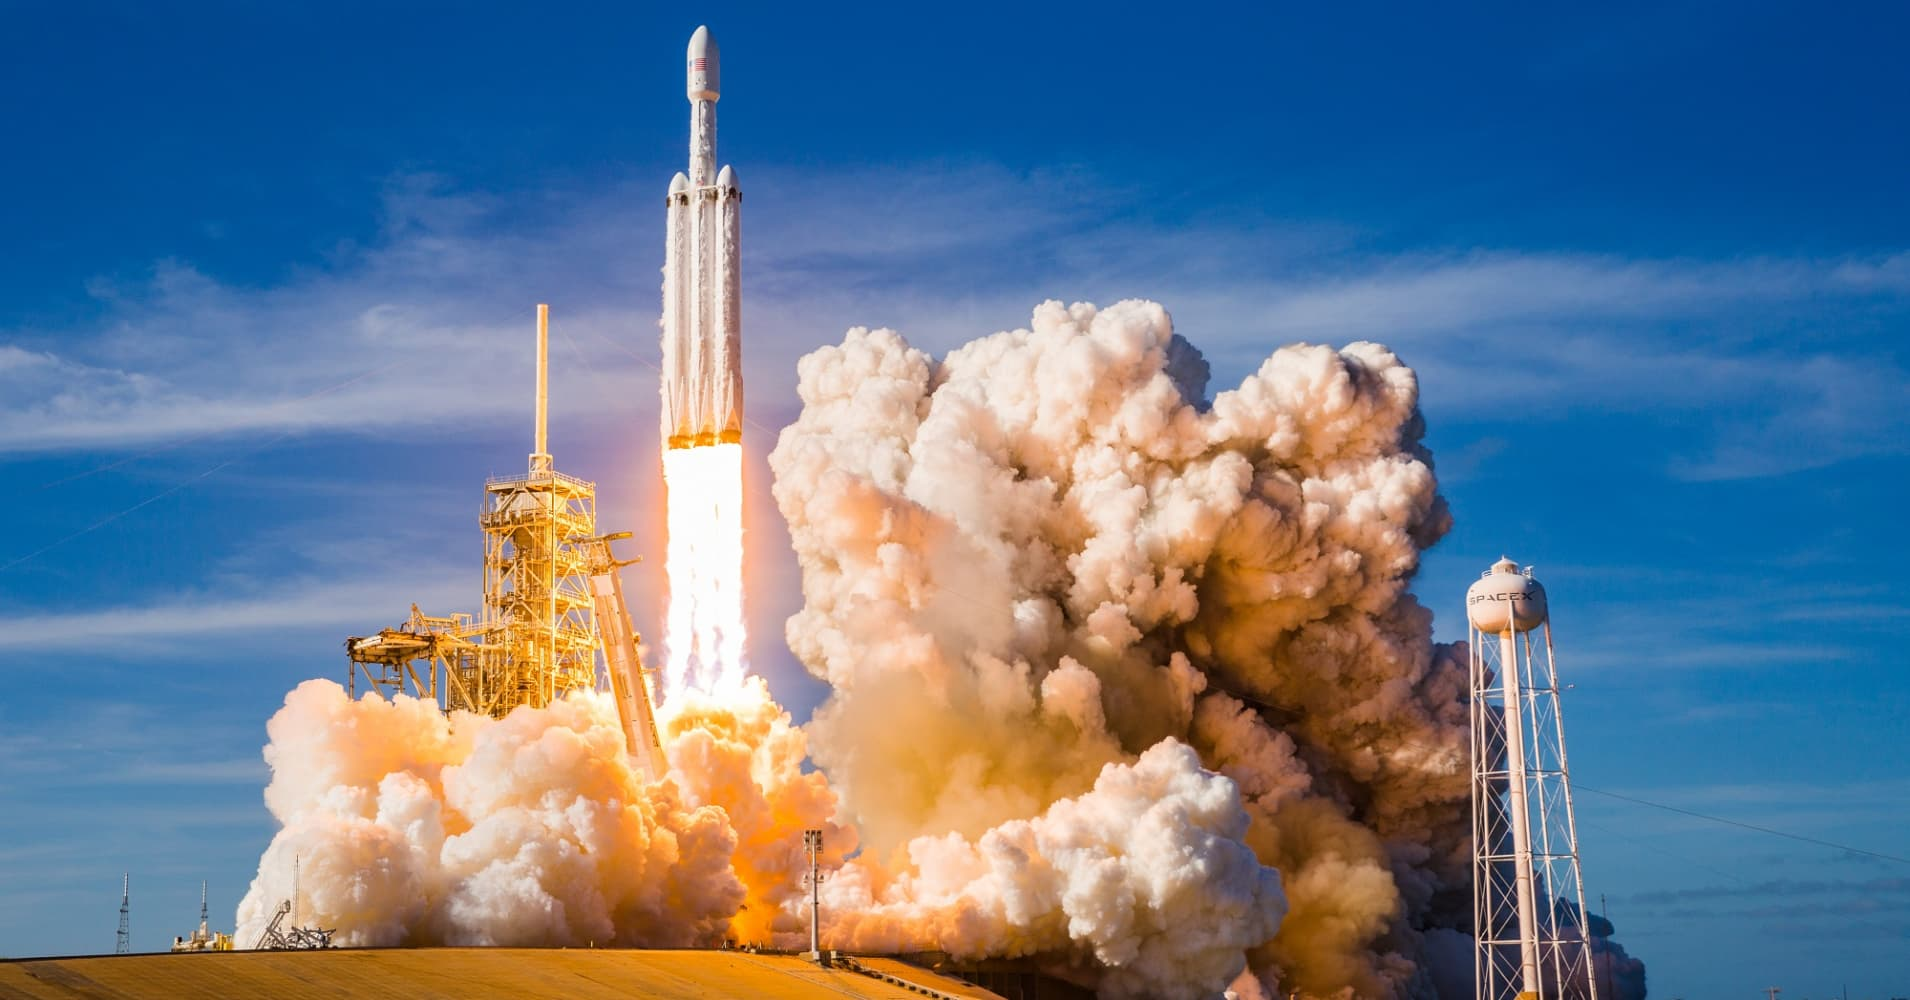 SpaceX launches its Falcon Heavy from launchpad 39A at NASA's Kennedy Space Center in Florida on February 6, 2018.